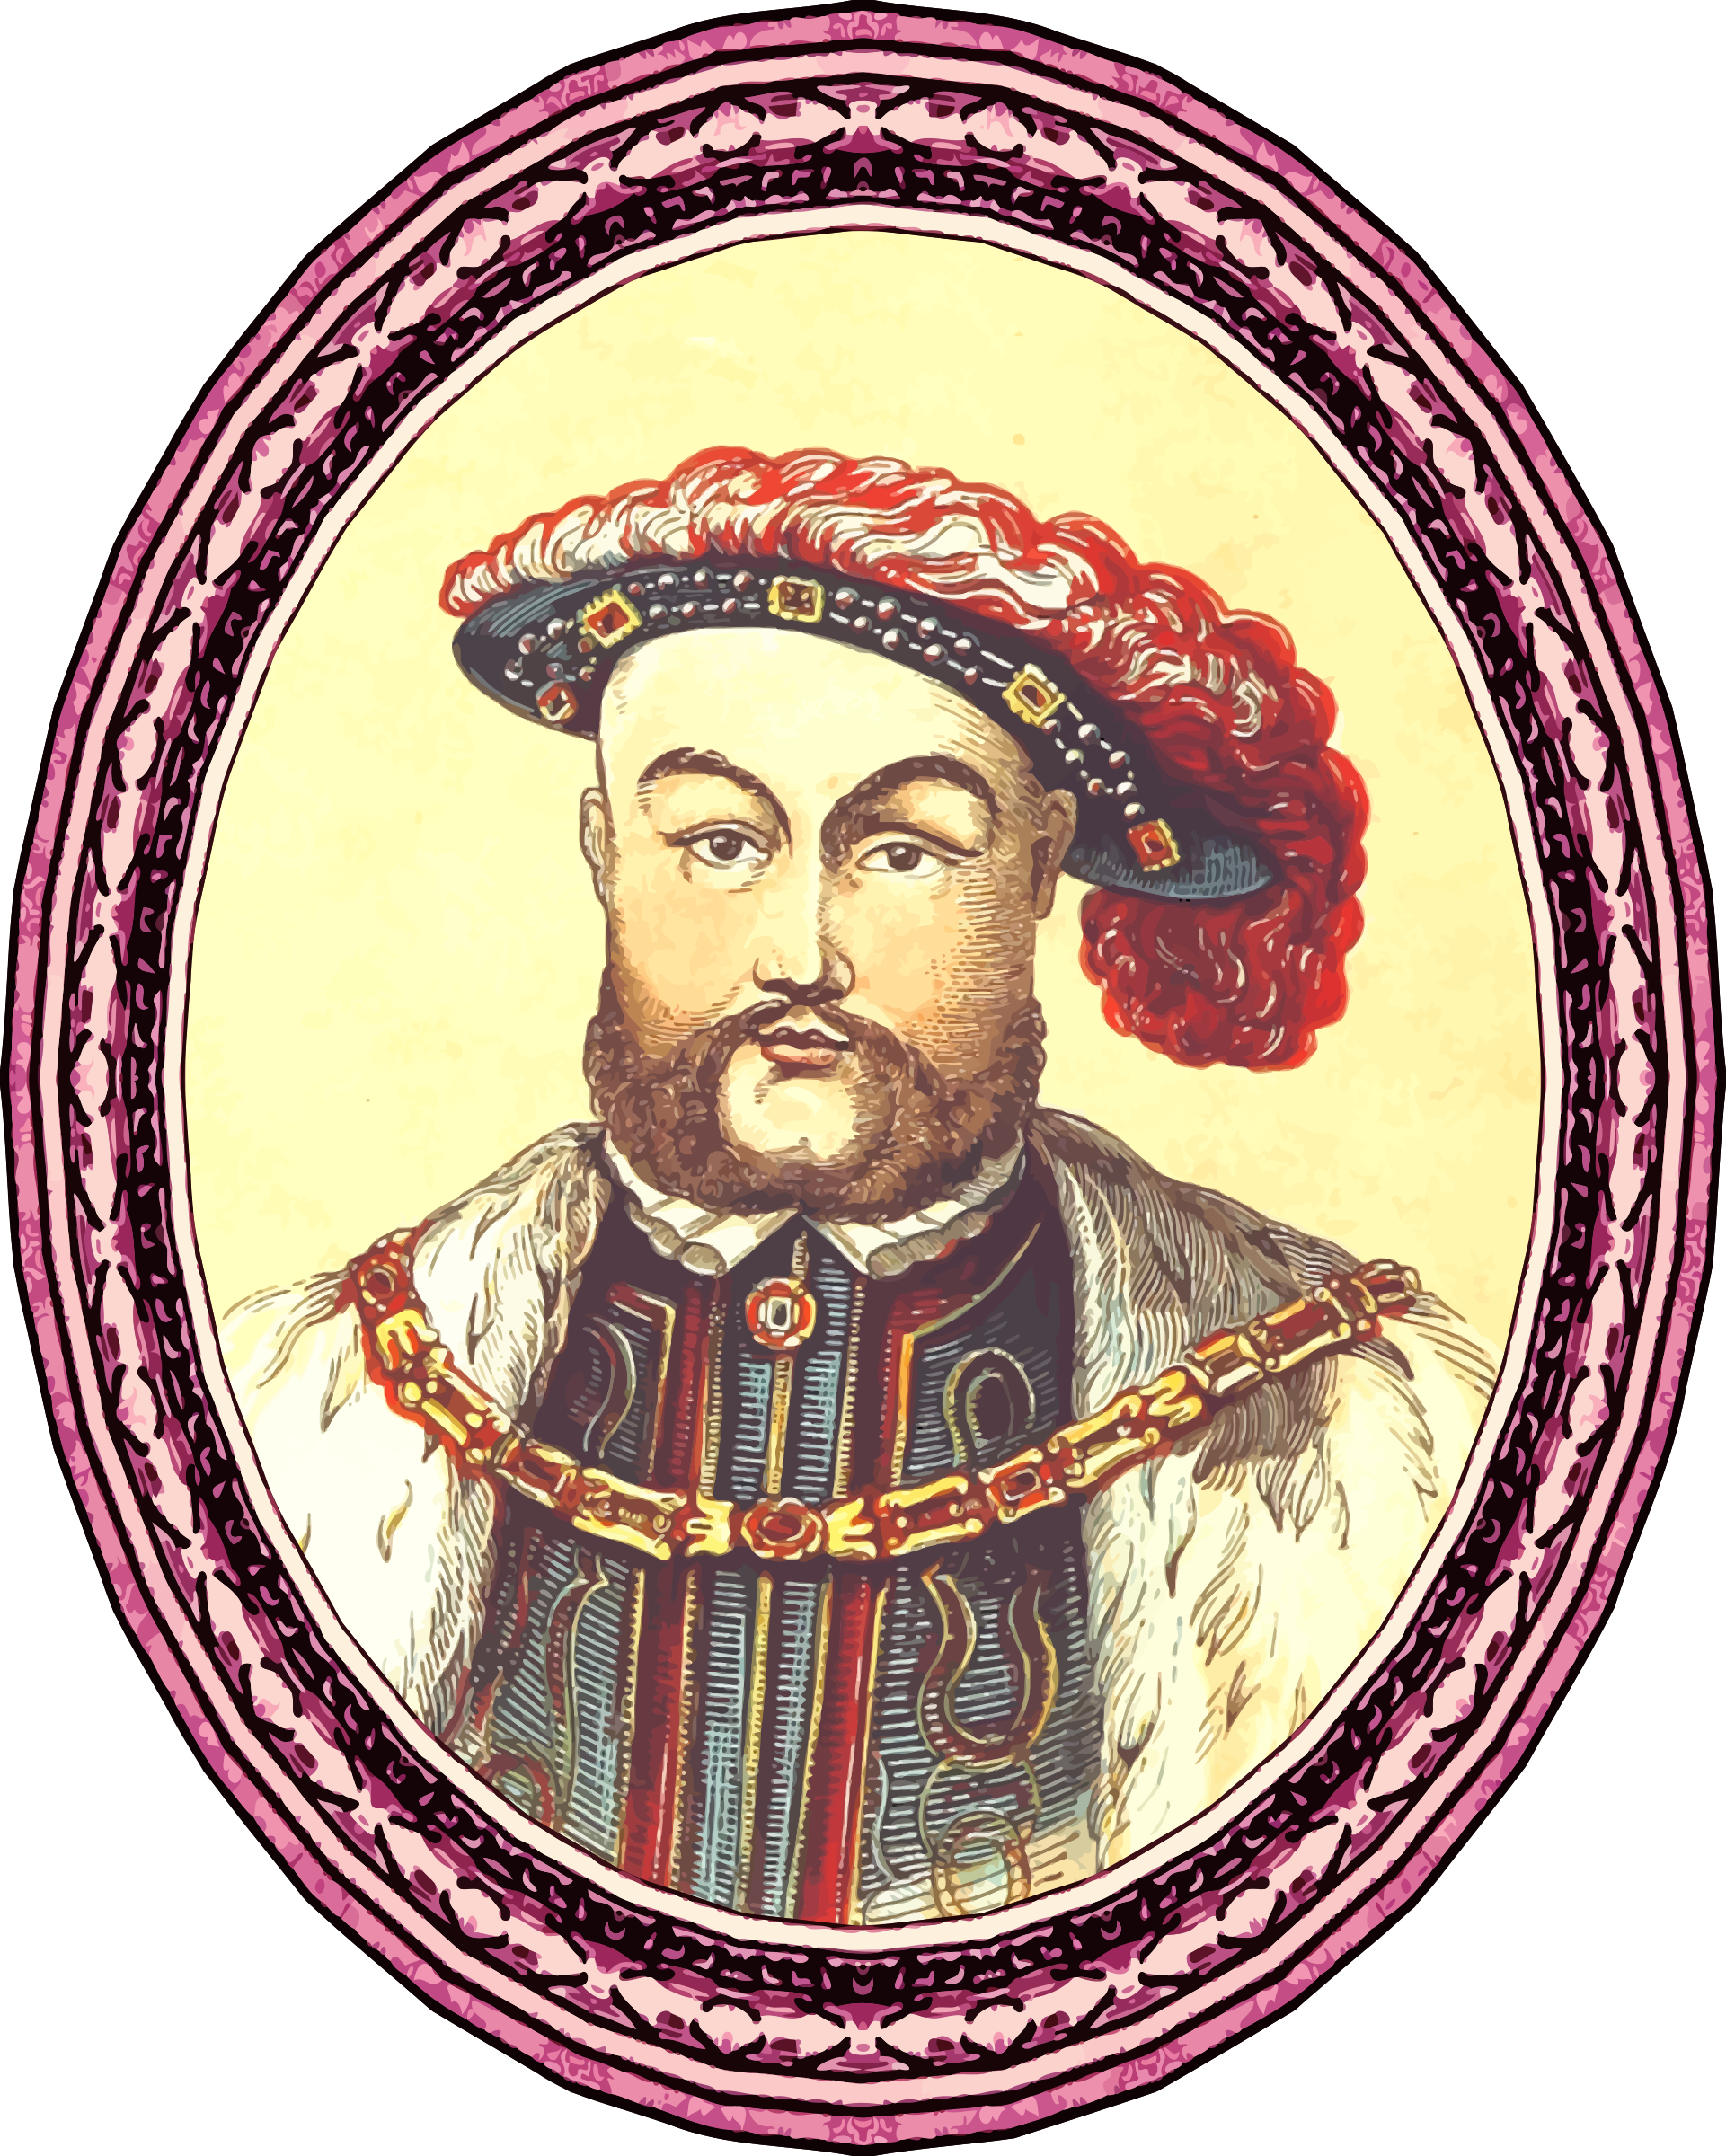 King Henry VIII (version 2, framed) by Firkin